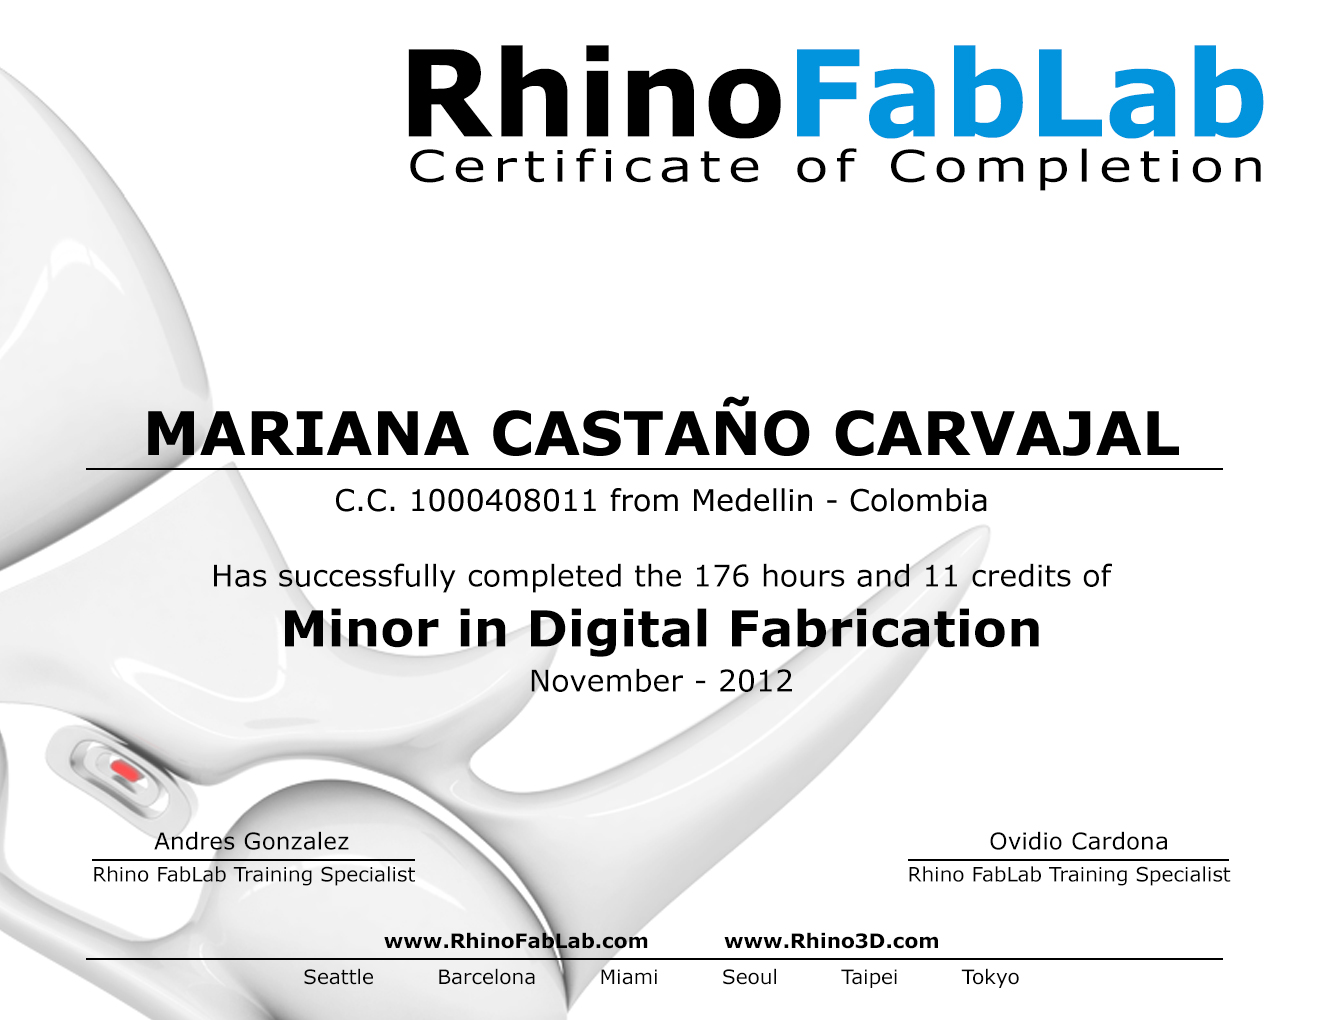 Digital Fabrication Minor / Diplomado at UPB's RhinoFabLab